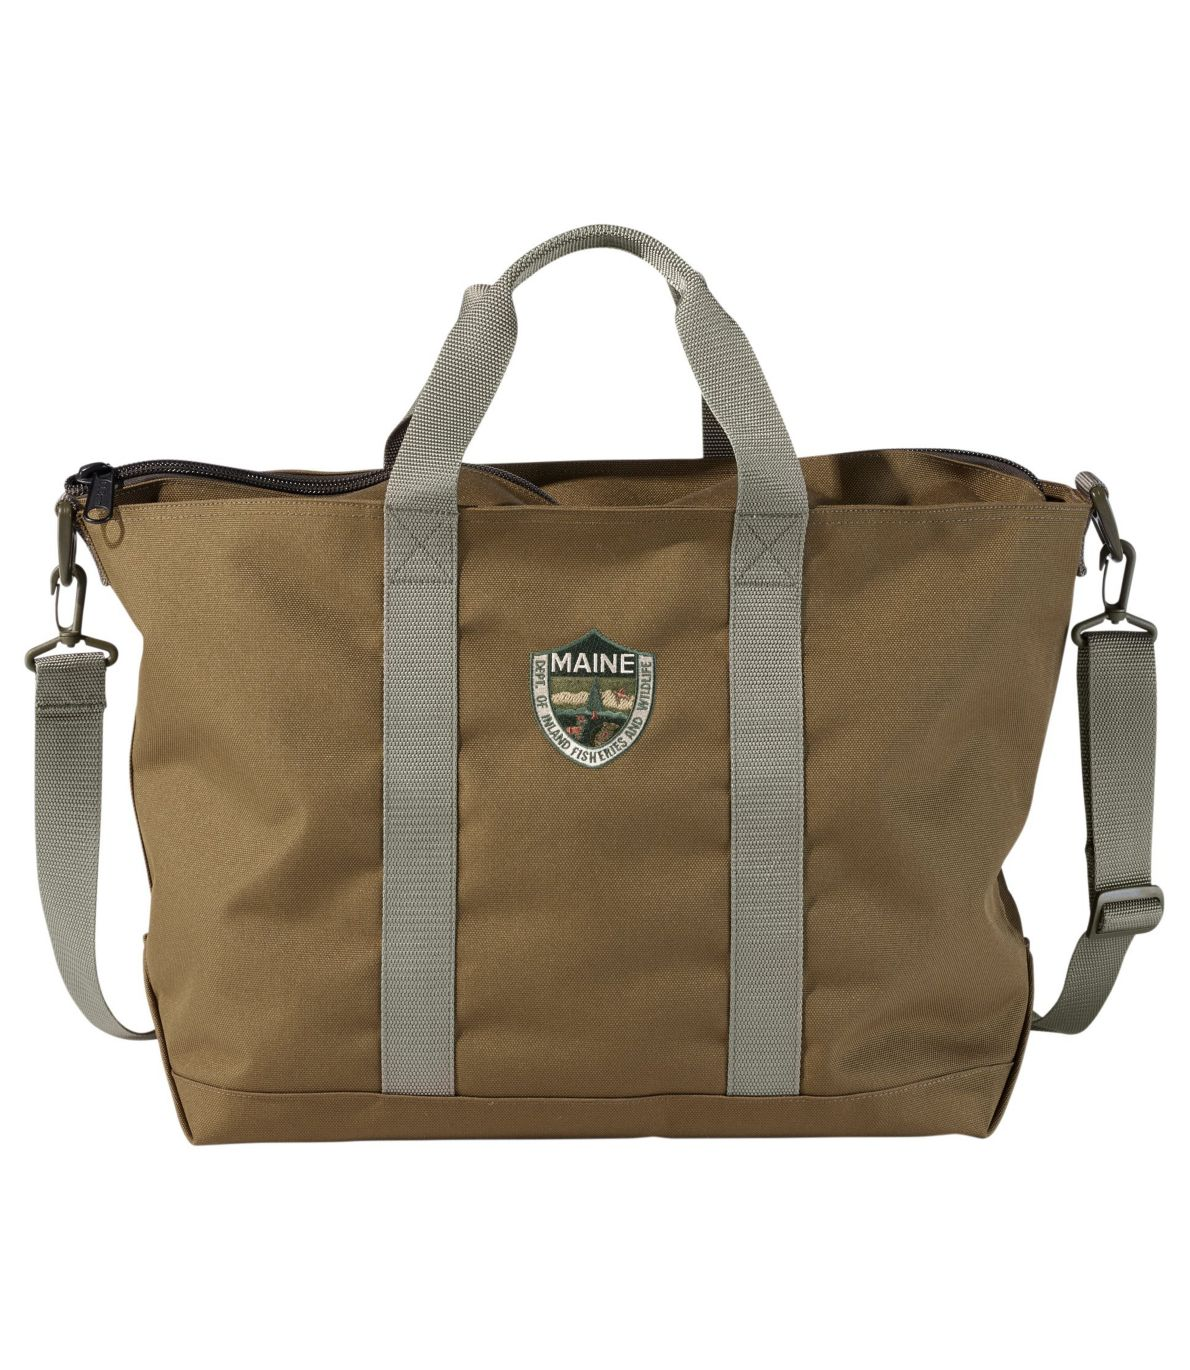 Maine Warden's Tote Bag